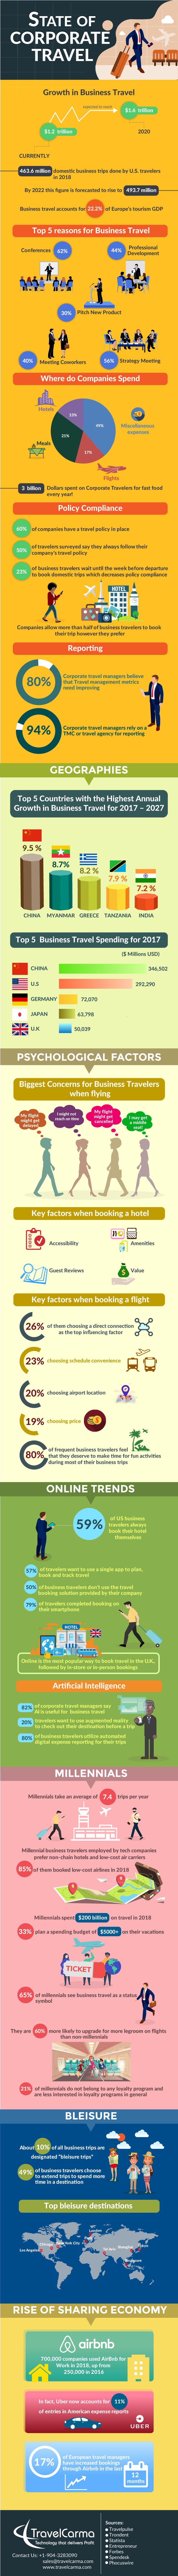 Business Travel infographic, corporate travel, business travel trends